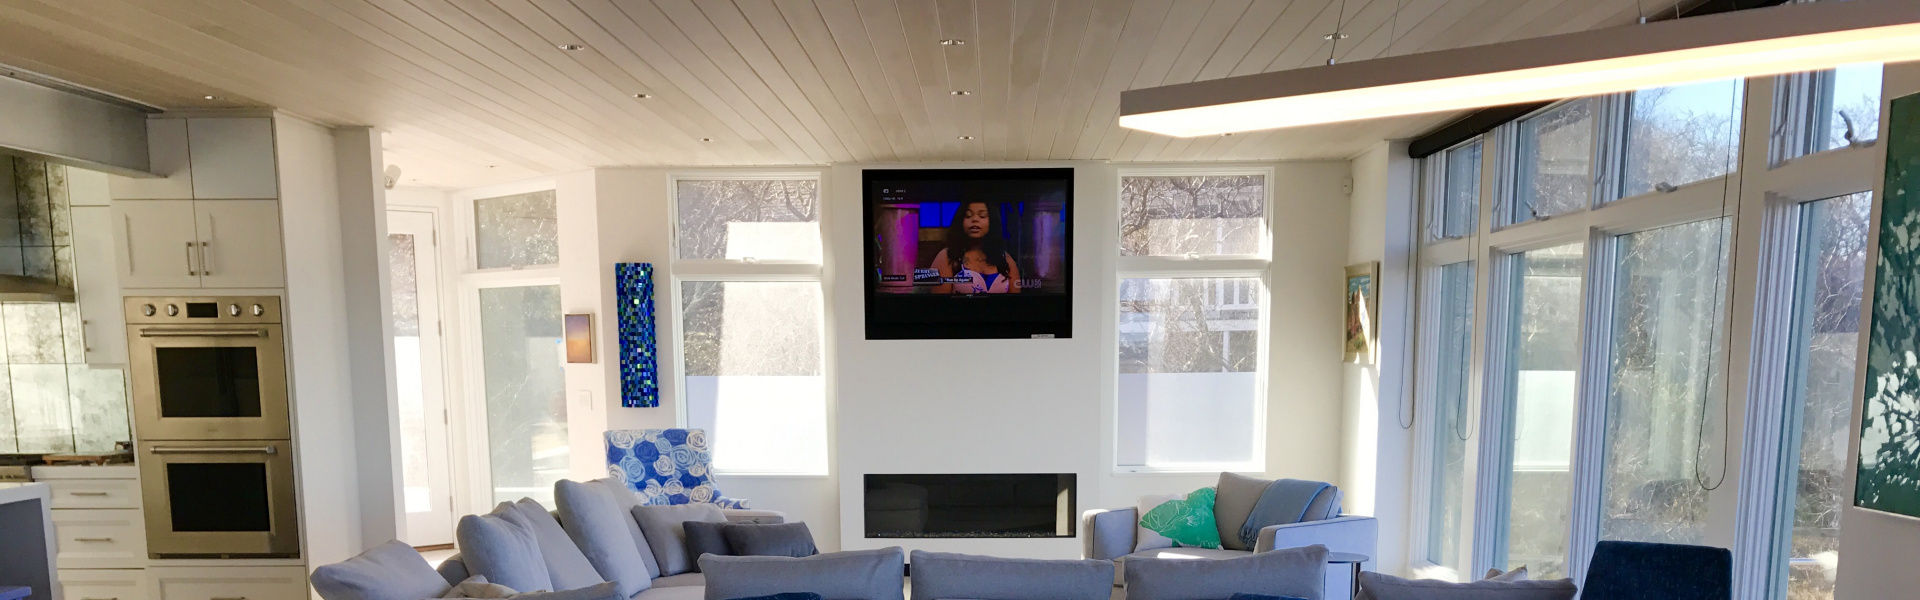 Smart home installation by Technical Operations And Development  for Falmouth